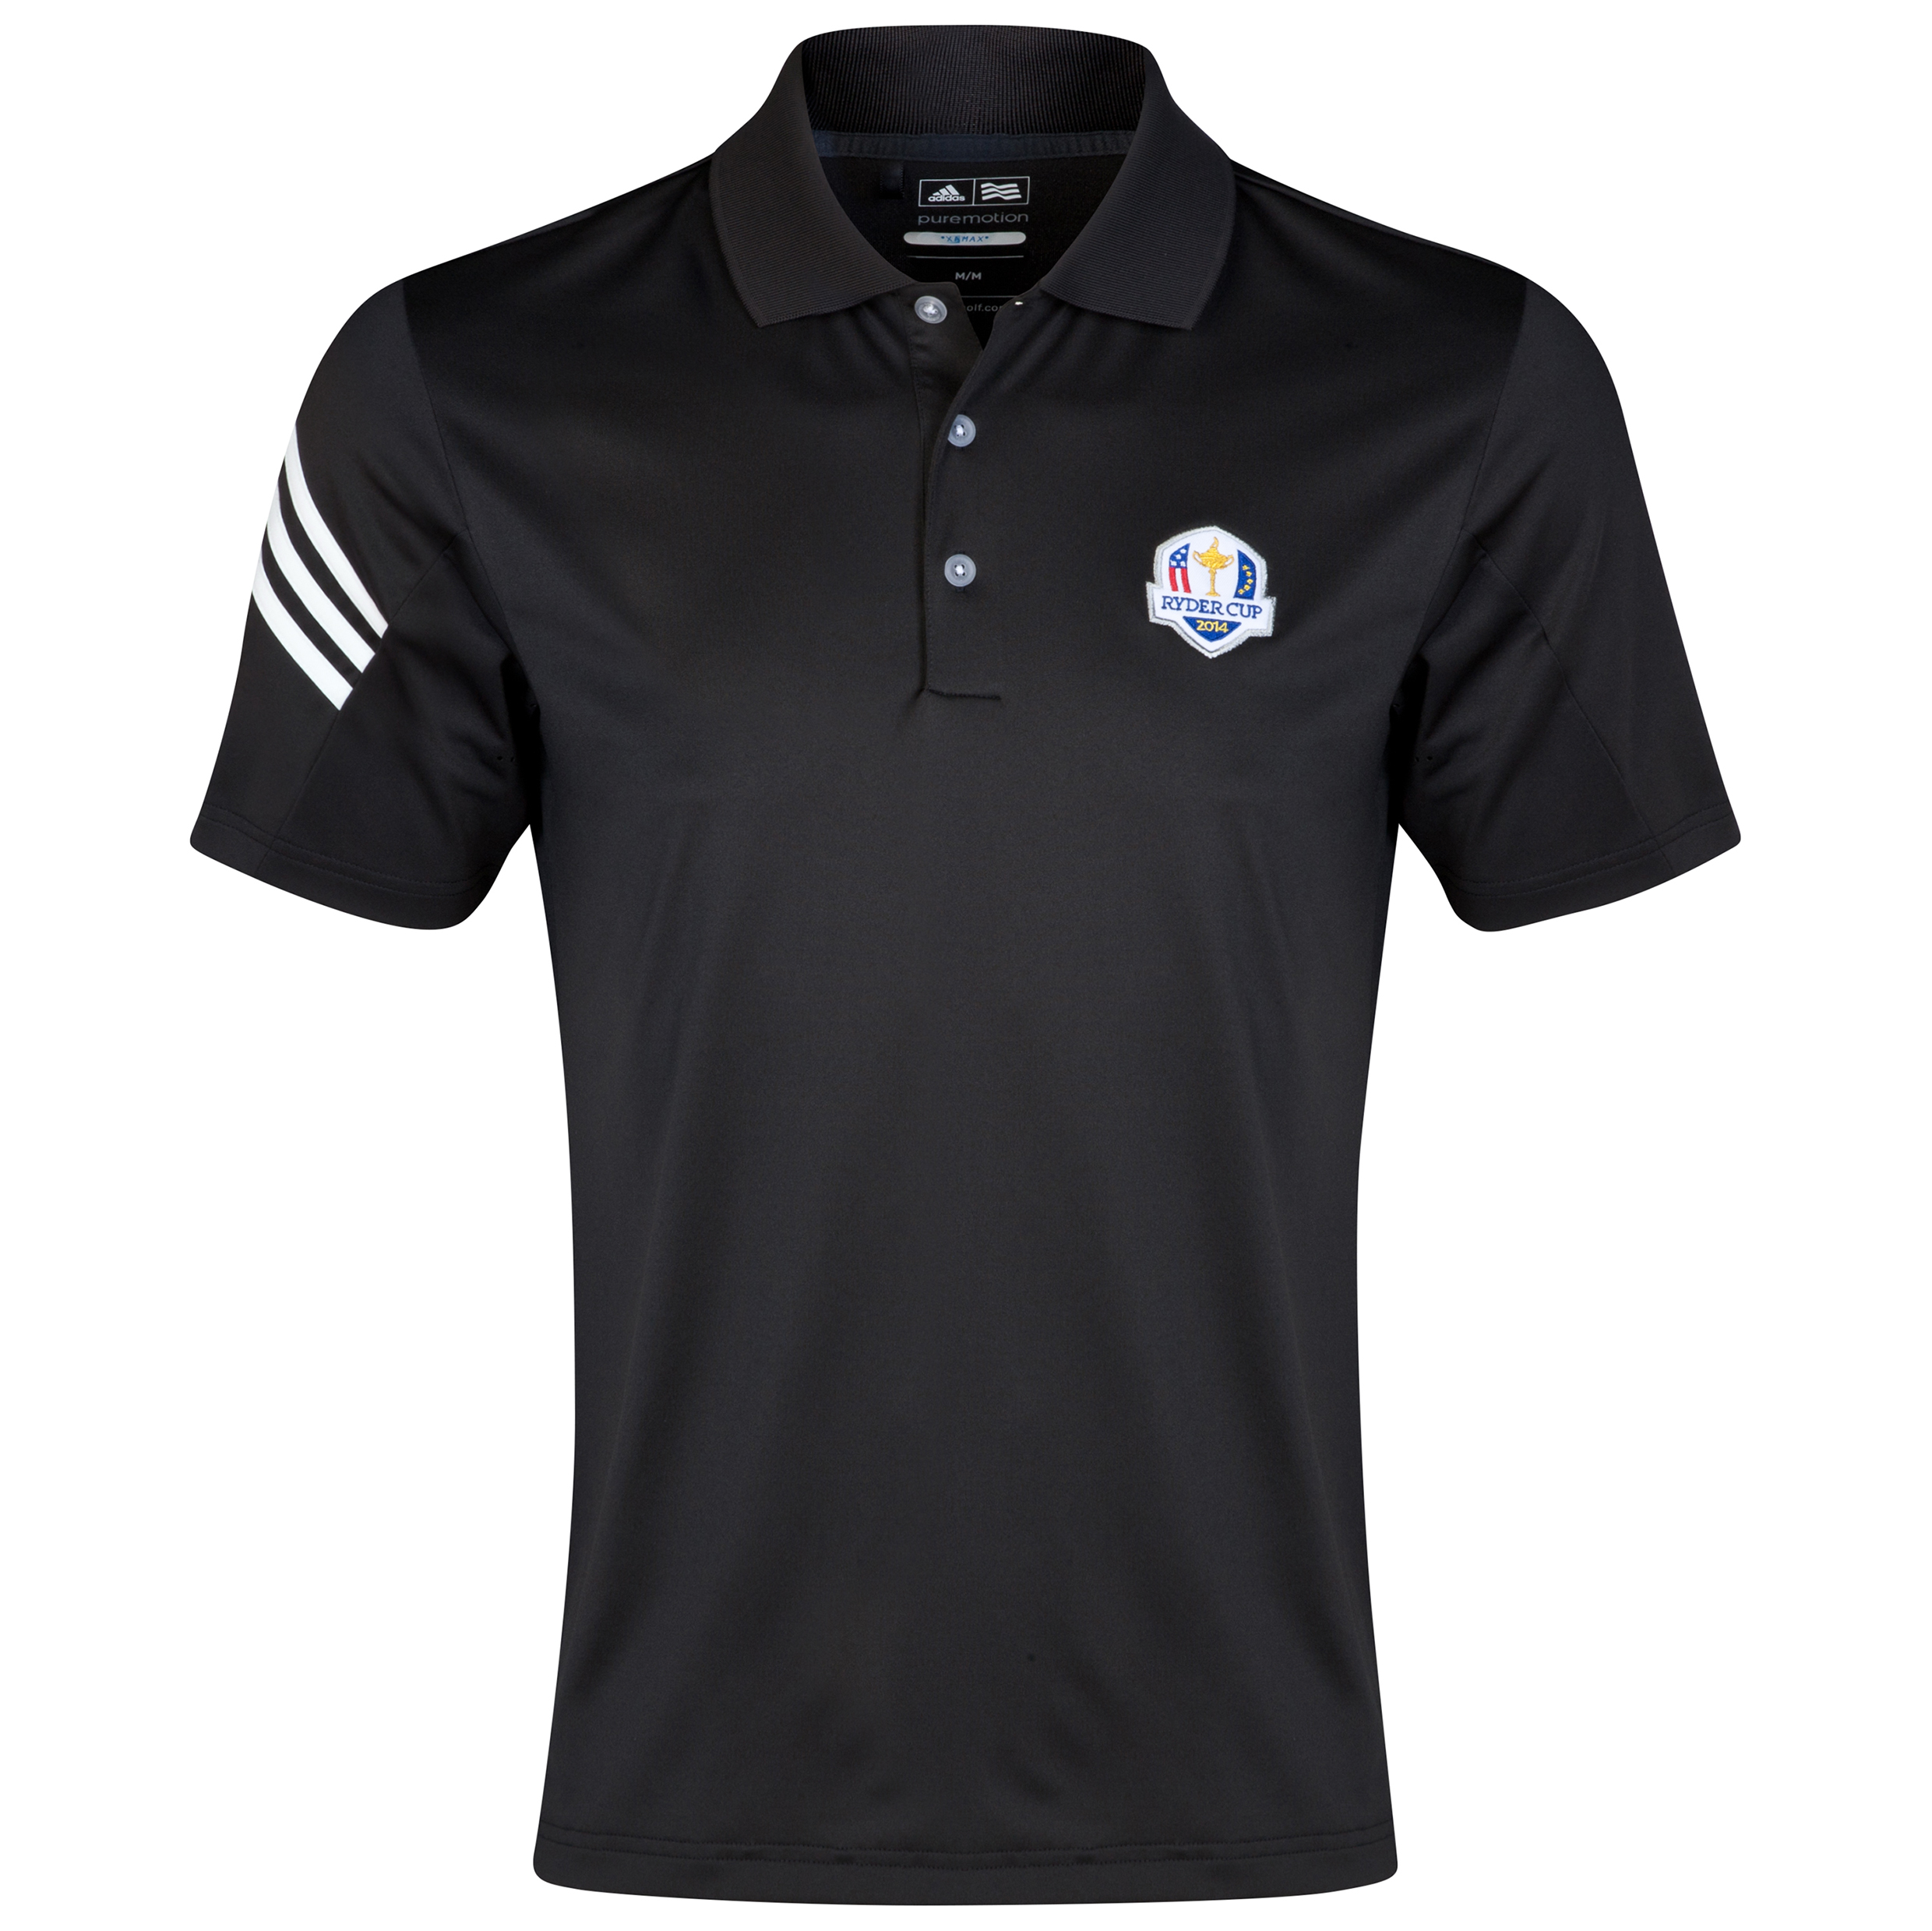 The 2014 Ryder Cup ClimaLite 3-Stripes Polo Black